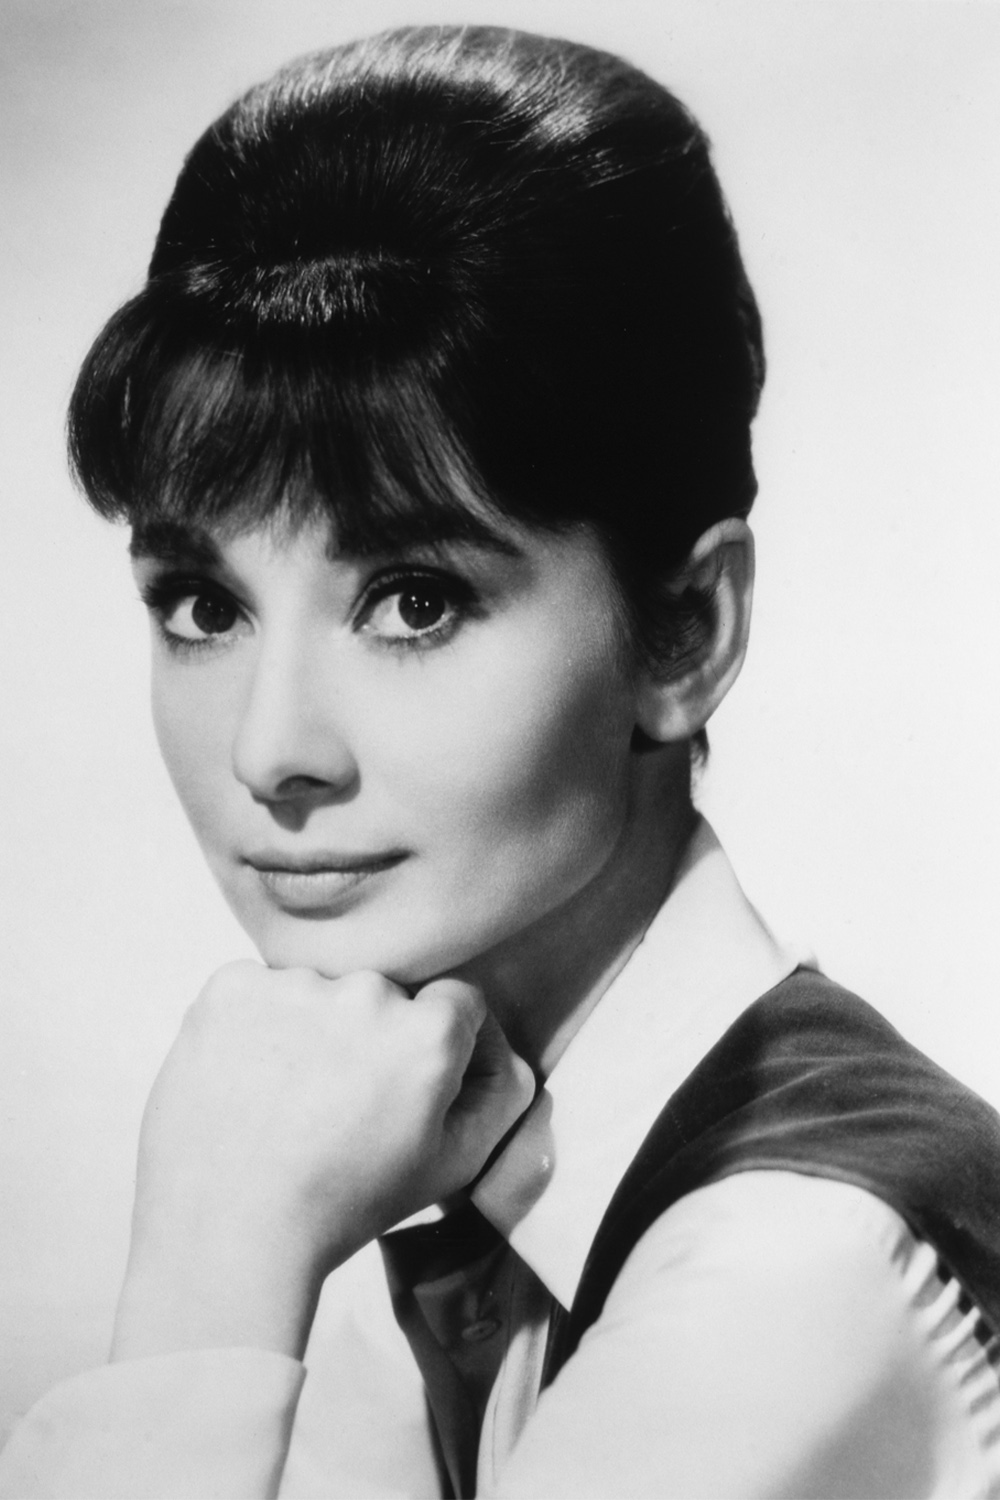 Audrey Hepburn's Best Hairstyles From Breakfast At Tiffany's To